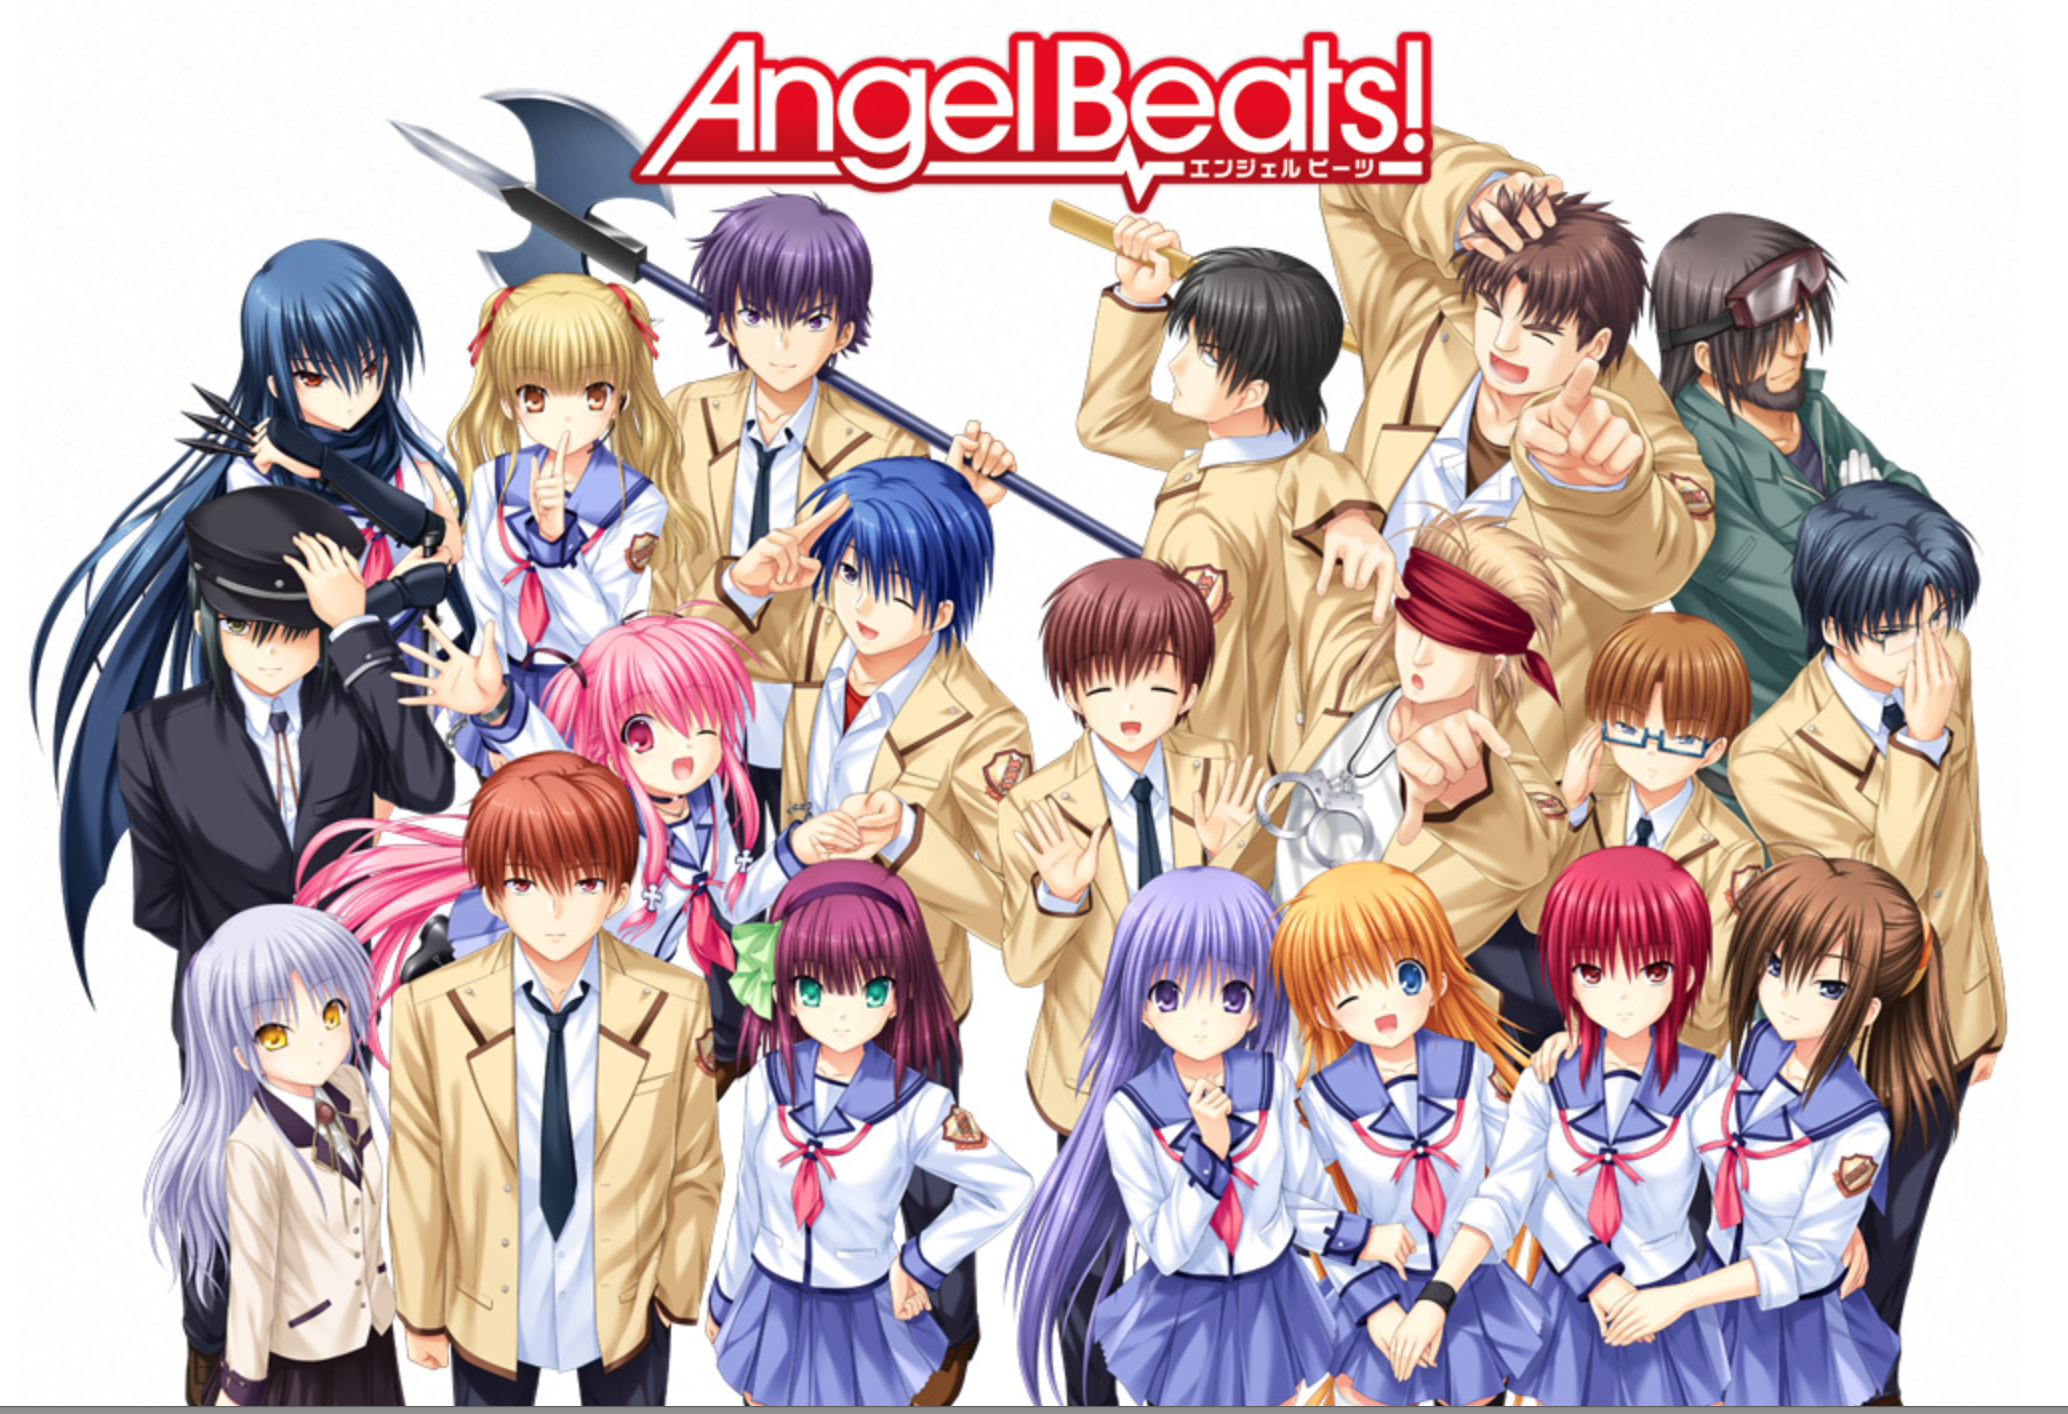 http://www.angelbeats.jp | Angel beats, Beats, Anime